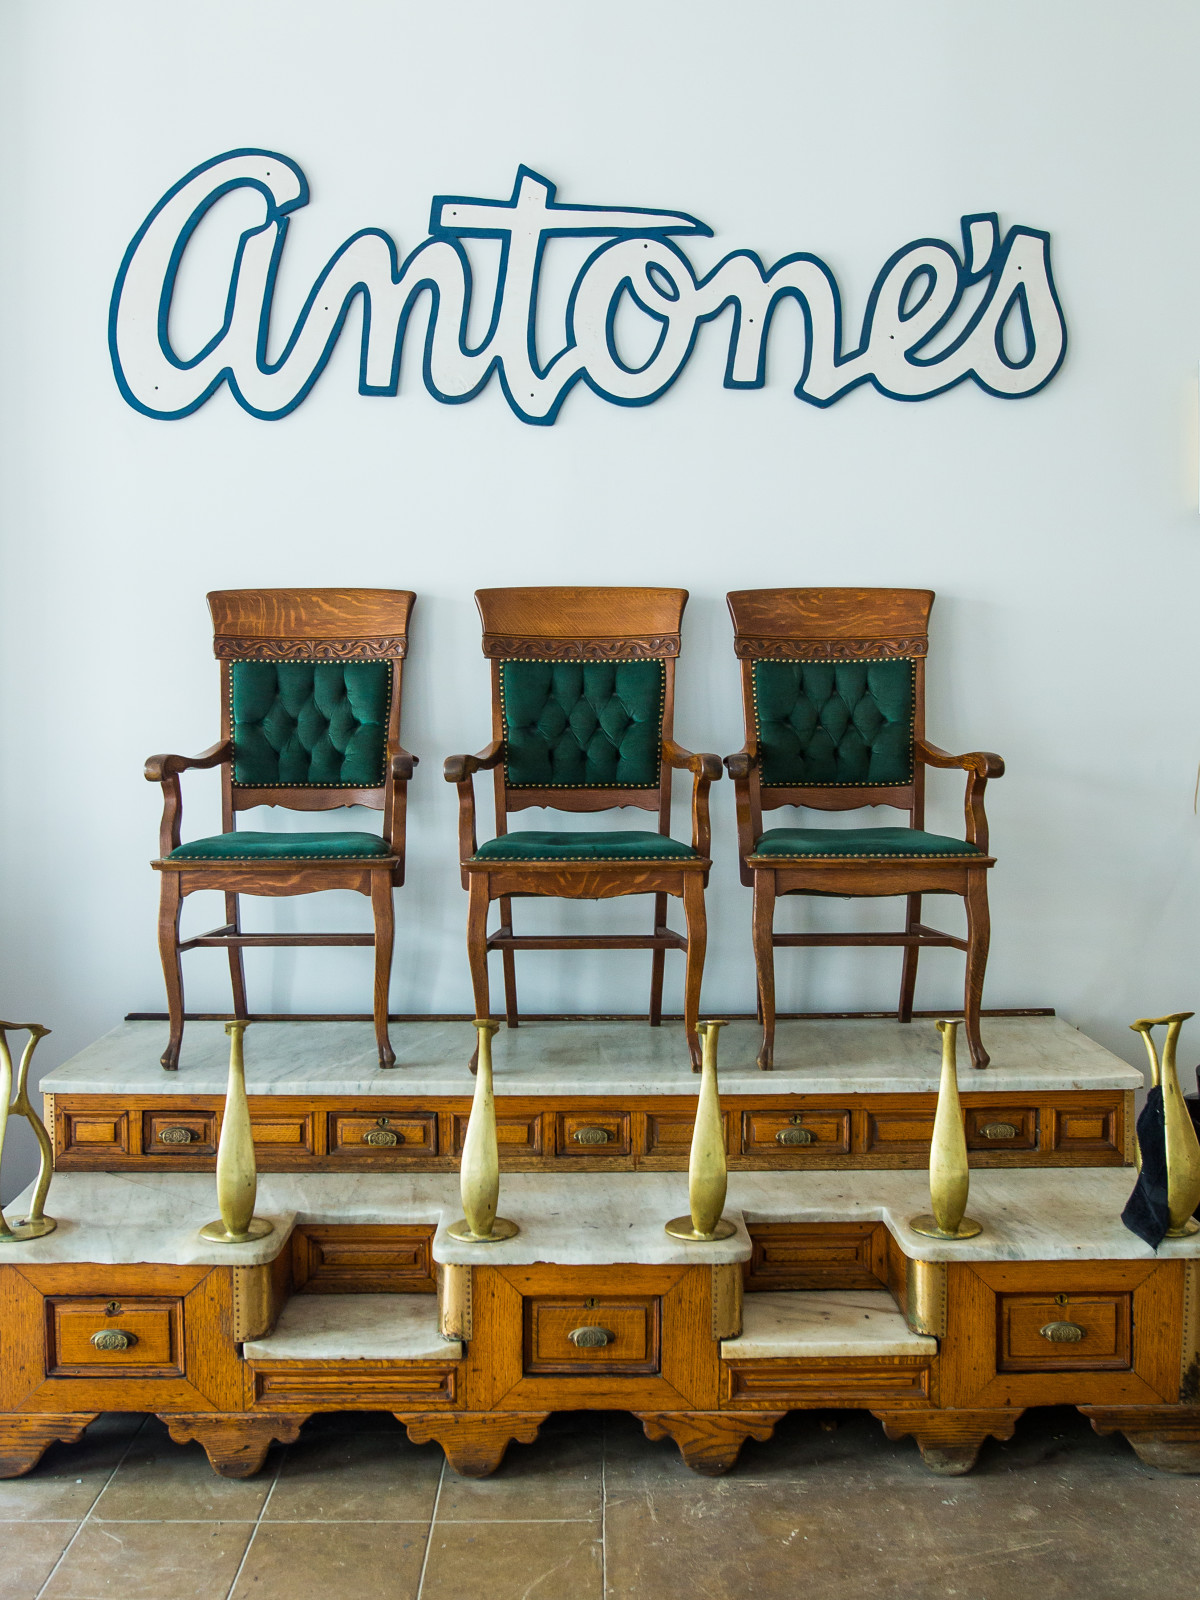 Antone's downtown venue Fifth Street 2016 logo shoe shining station chairs